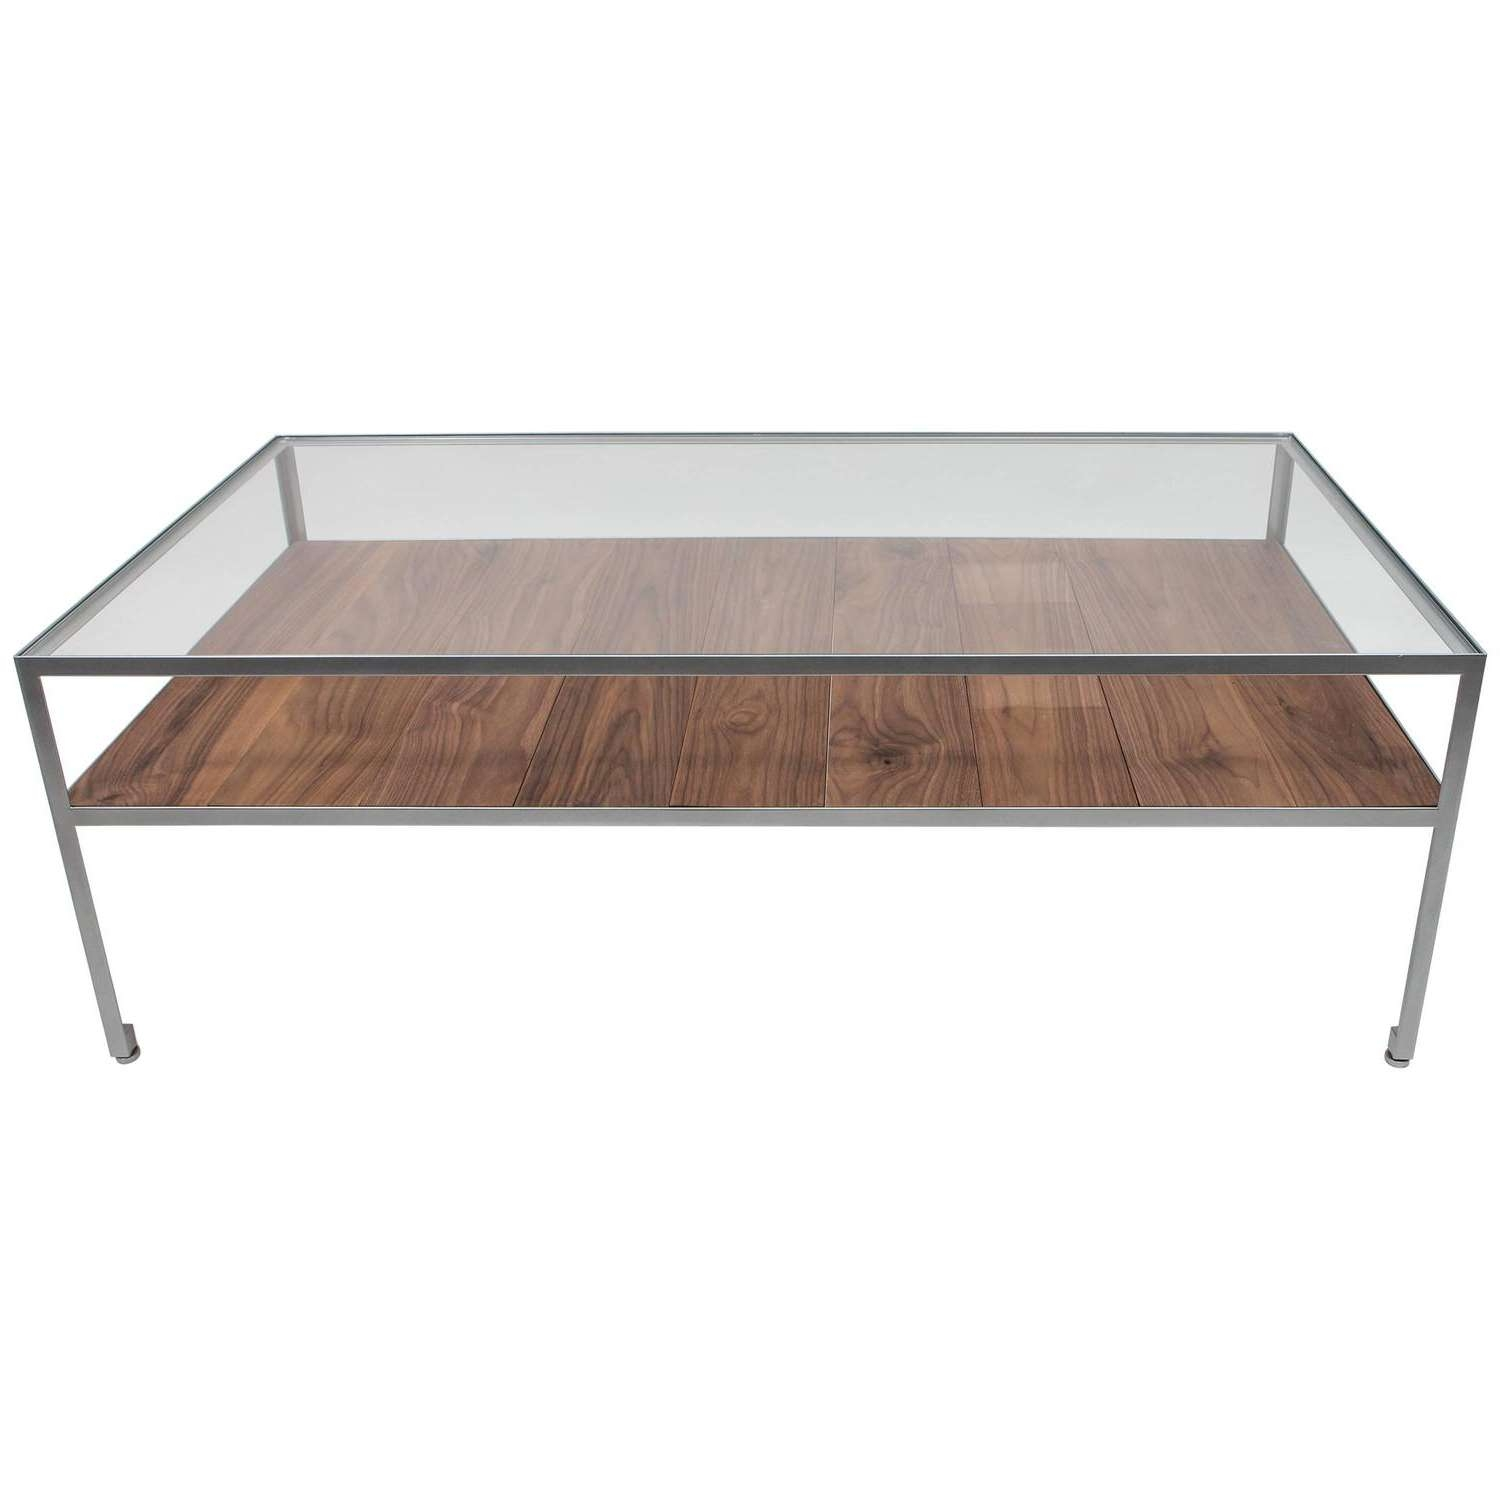 Round Nickel Over Steel Floating Glass Coffee Table For Sale At Intended For Latest Floating Glass Coffee Tables (View 18 of 20)